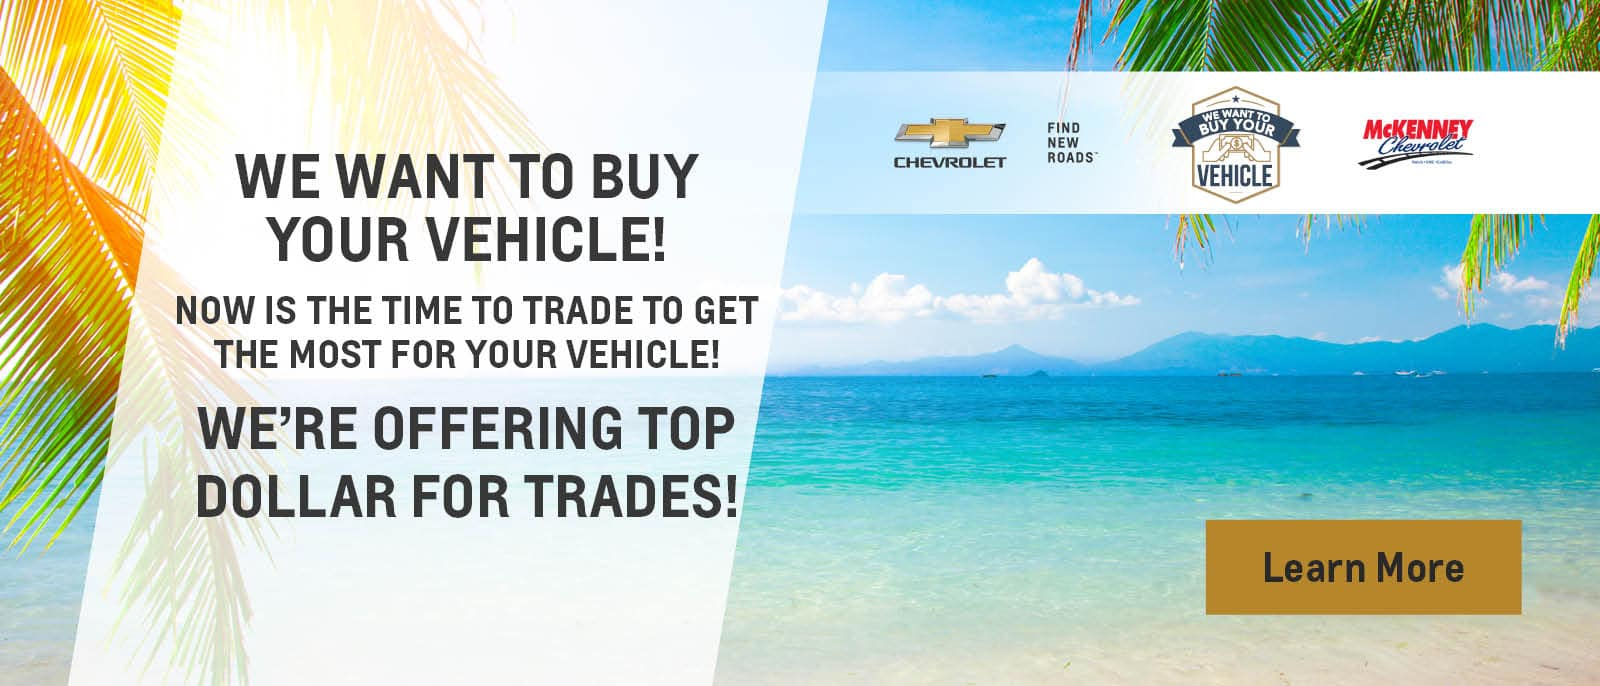 McKenney Chevrolet Buick GMC Cadillac_15328_00013827_UX_HPB_Trade